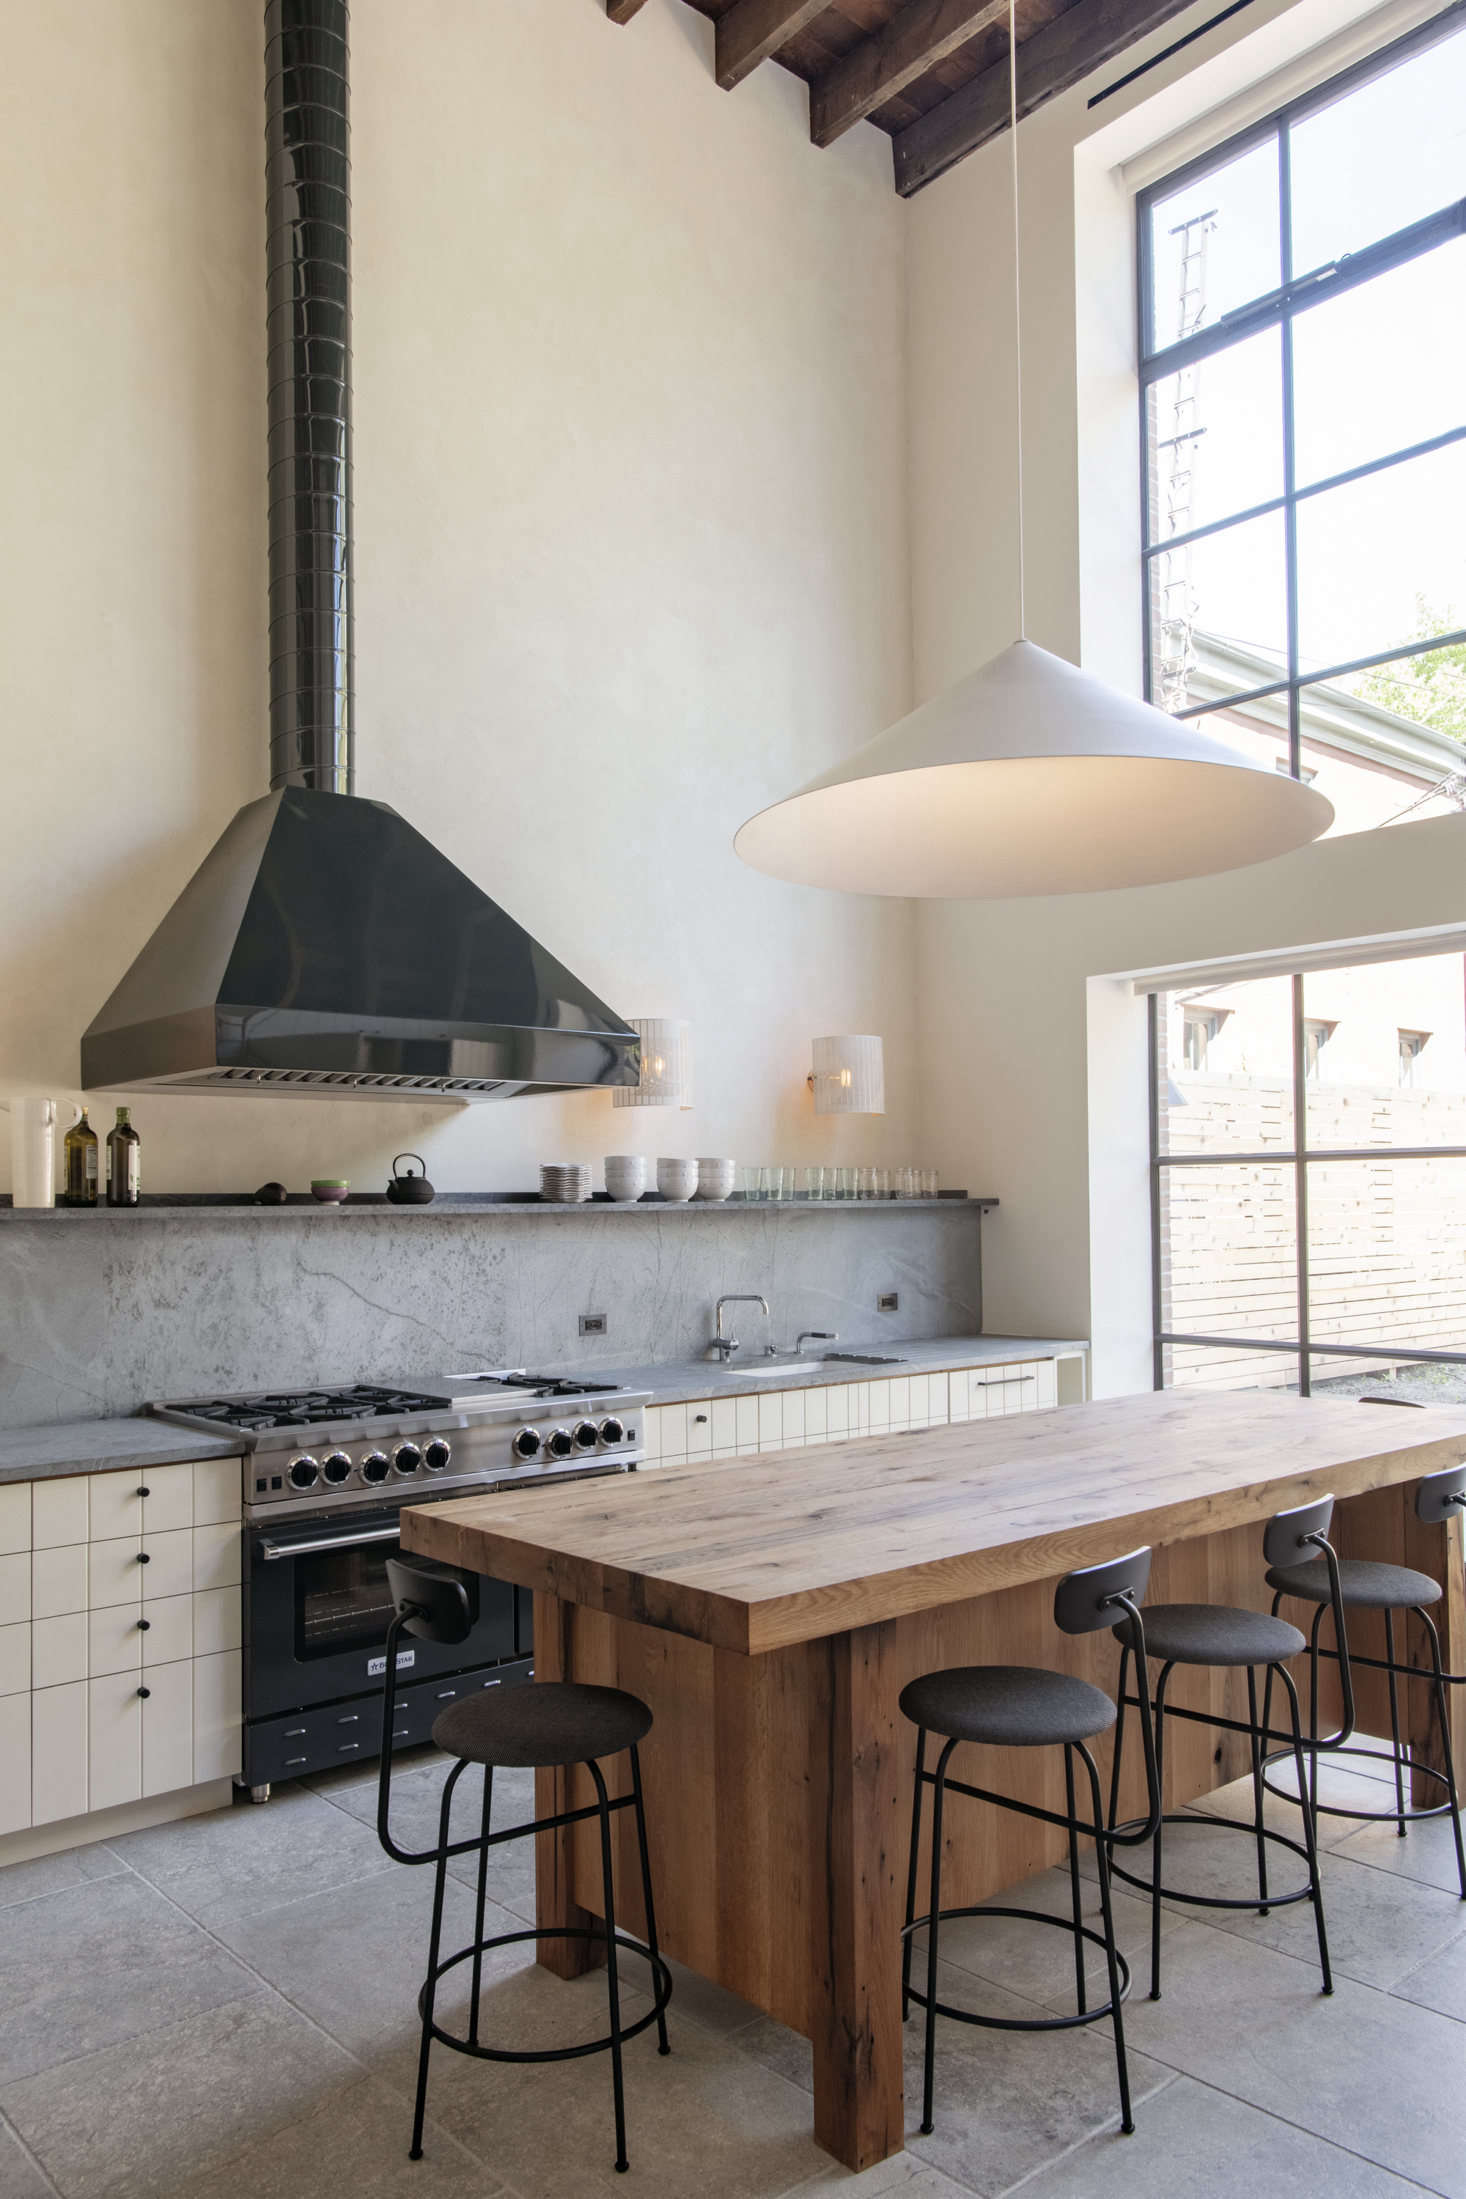 kitchen pendant white corner cabinets for trend alert 7 oversized sculptural dining pendants an wastberg w151s3 extra large designed by architects claesson koivisto rune hovers